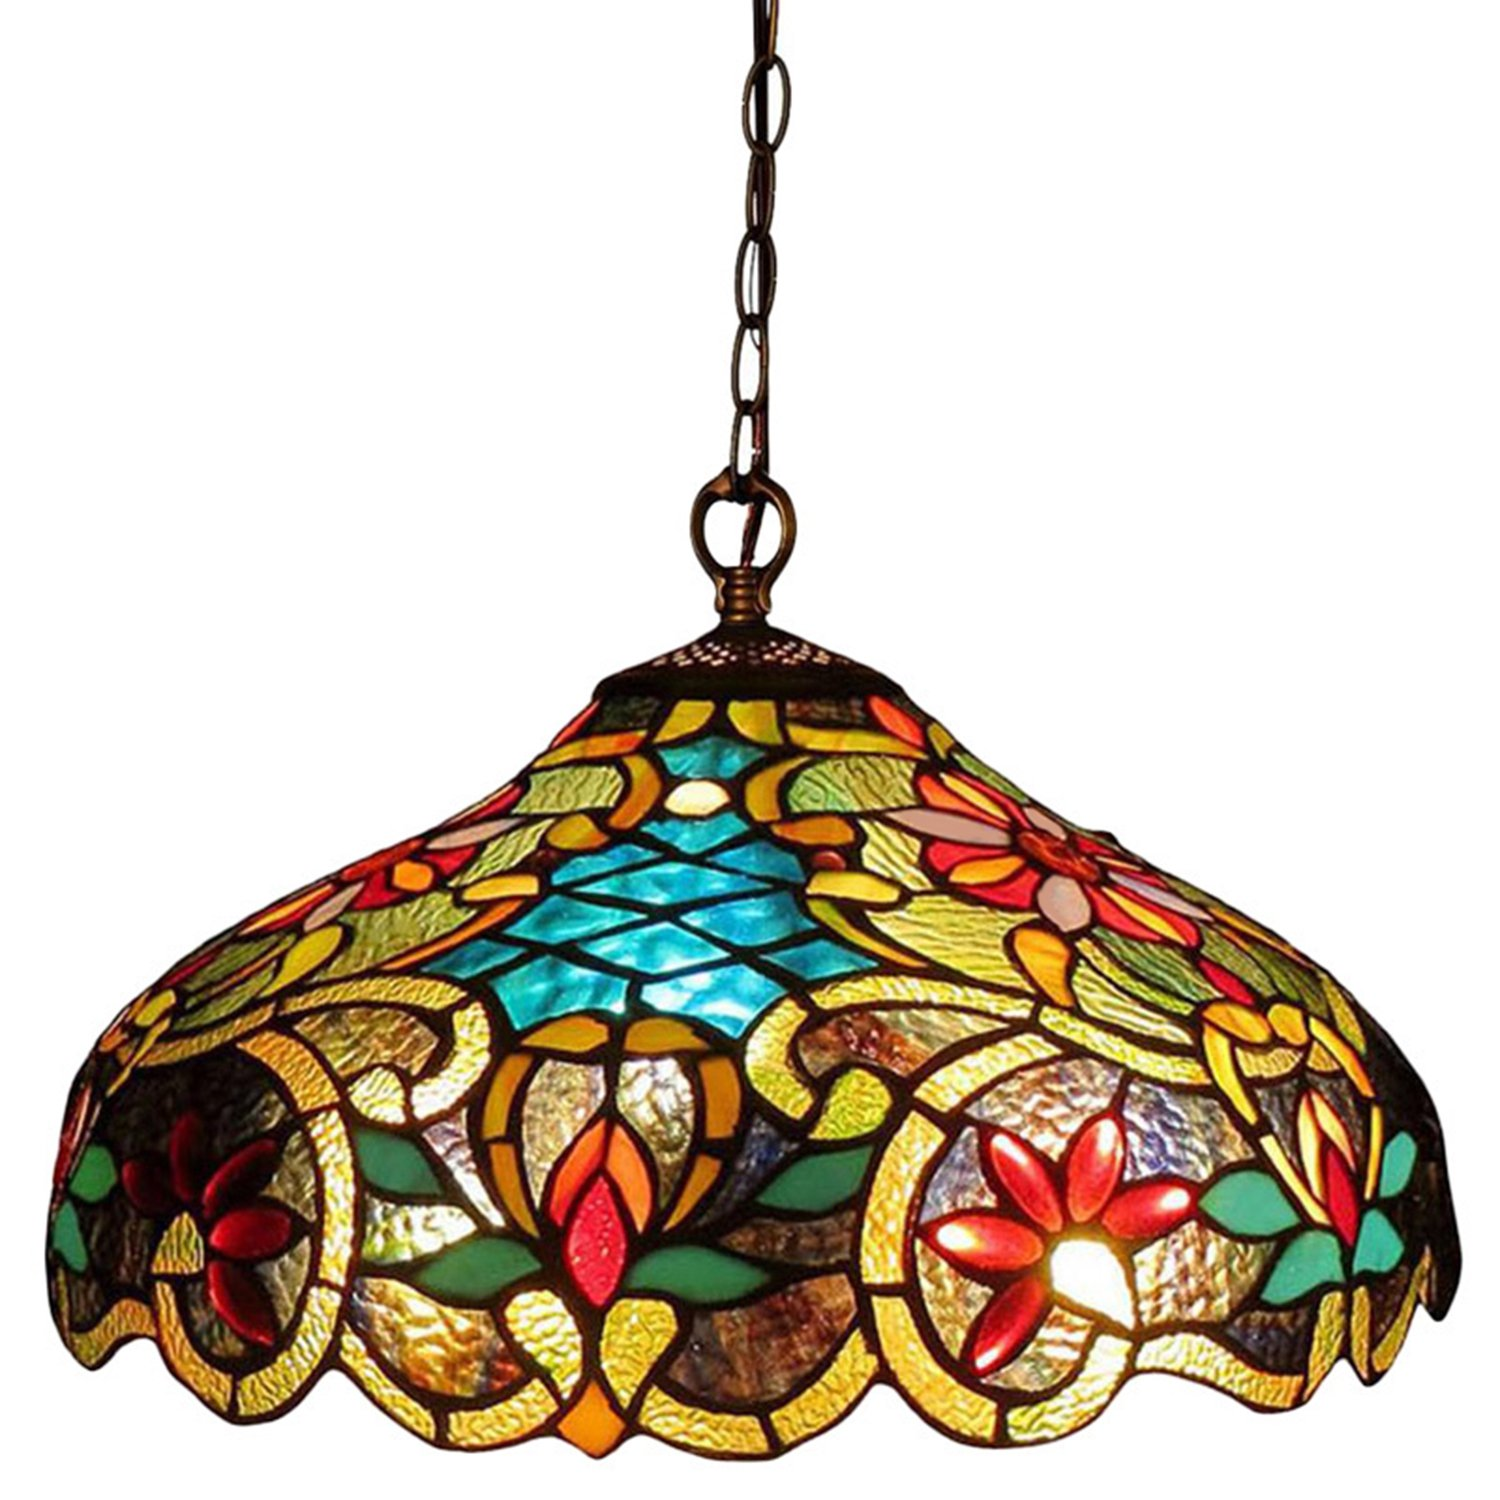 Tiffany style chandelier lighting 2 light pendant hanging lamp colorful glass victorian ceiling light fixture h 12 x d 18 inches shade dark antique